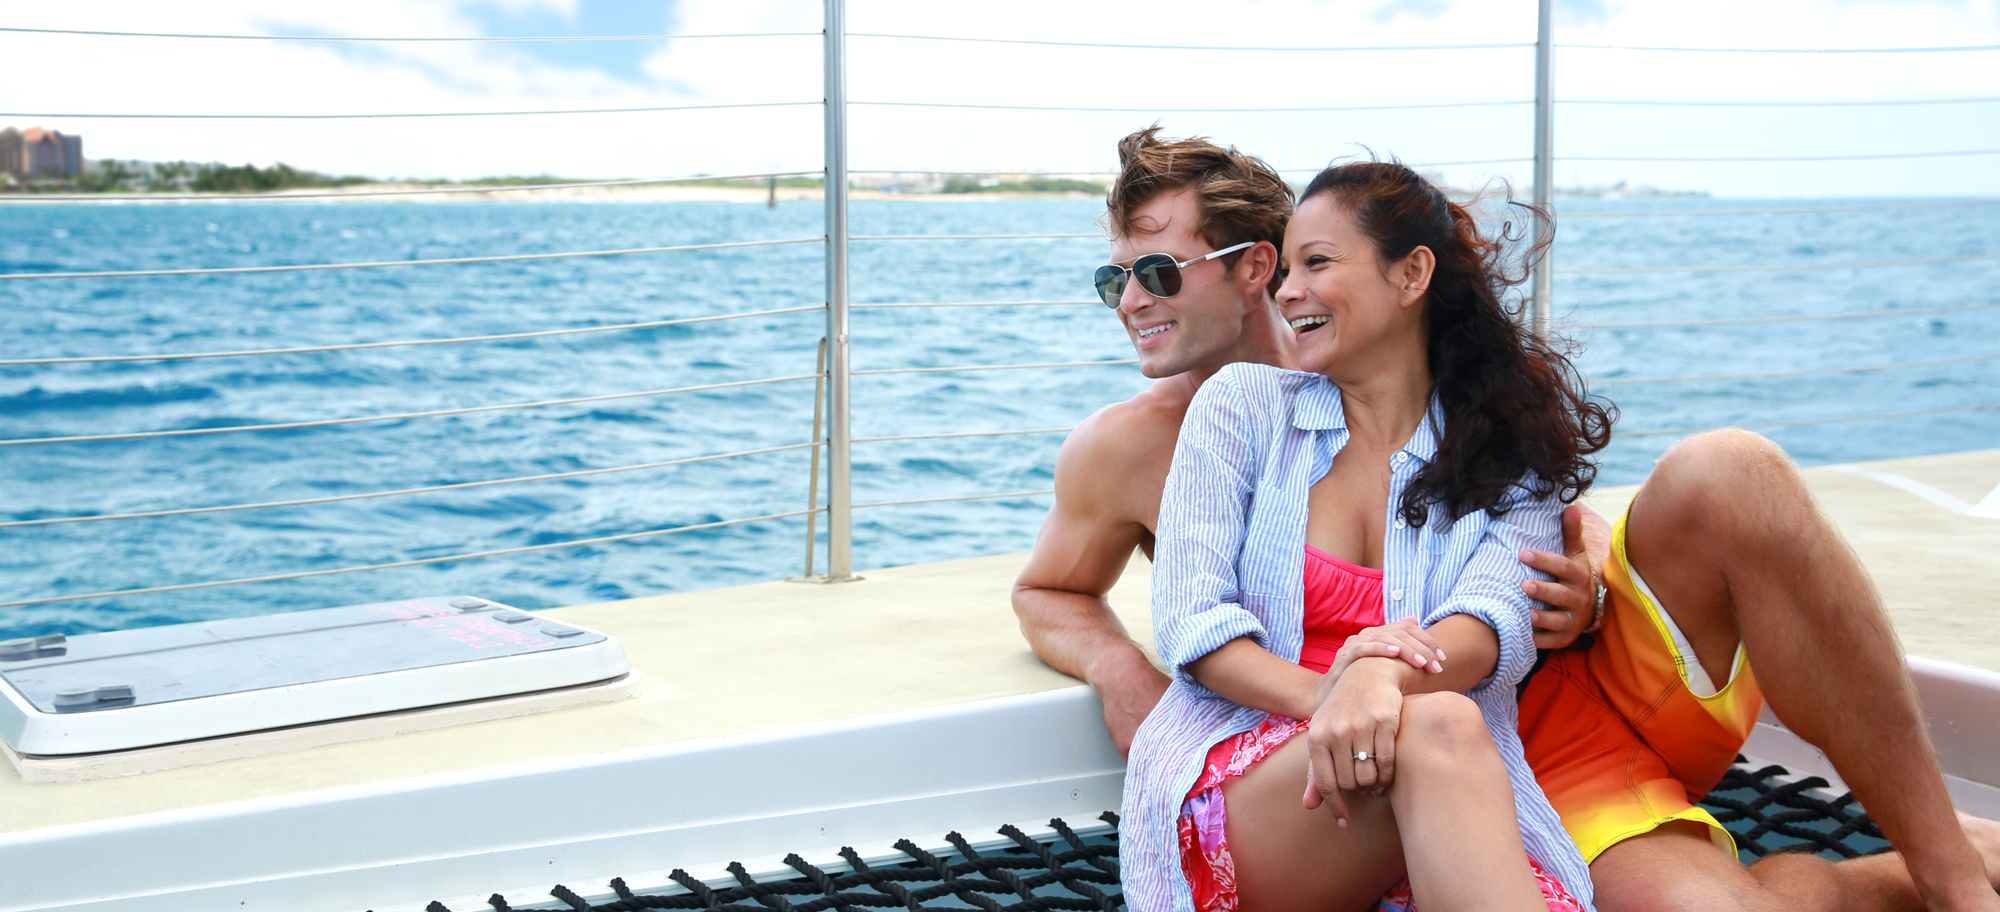 A smiling man and woman sit together on the deck of a catamaran at sea